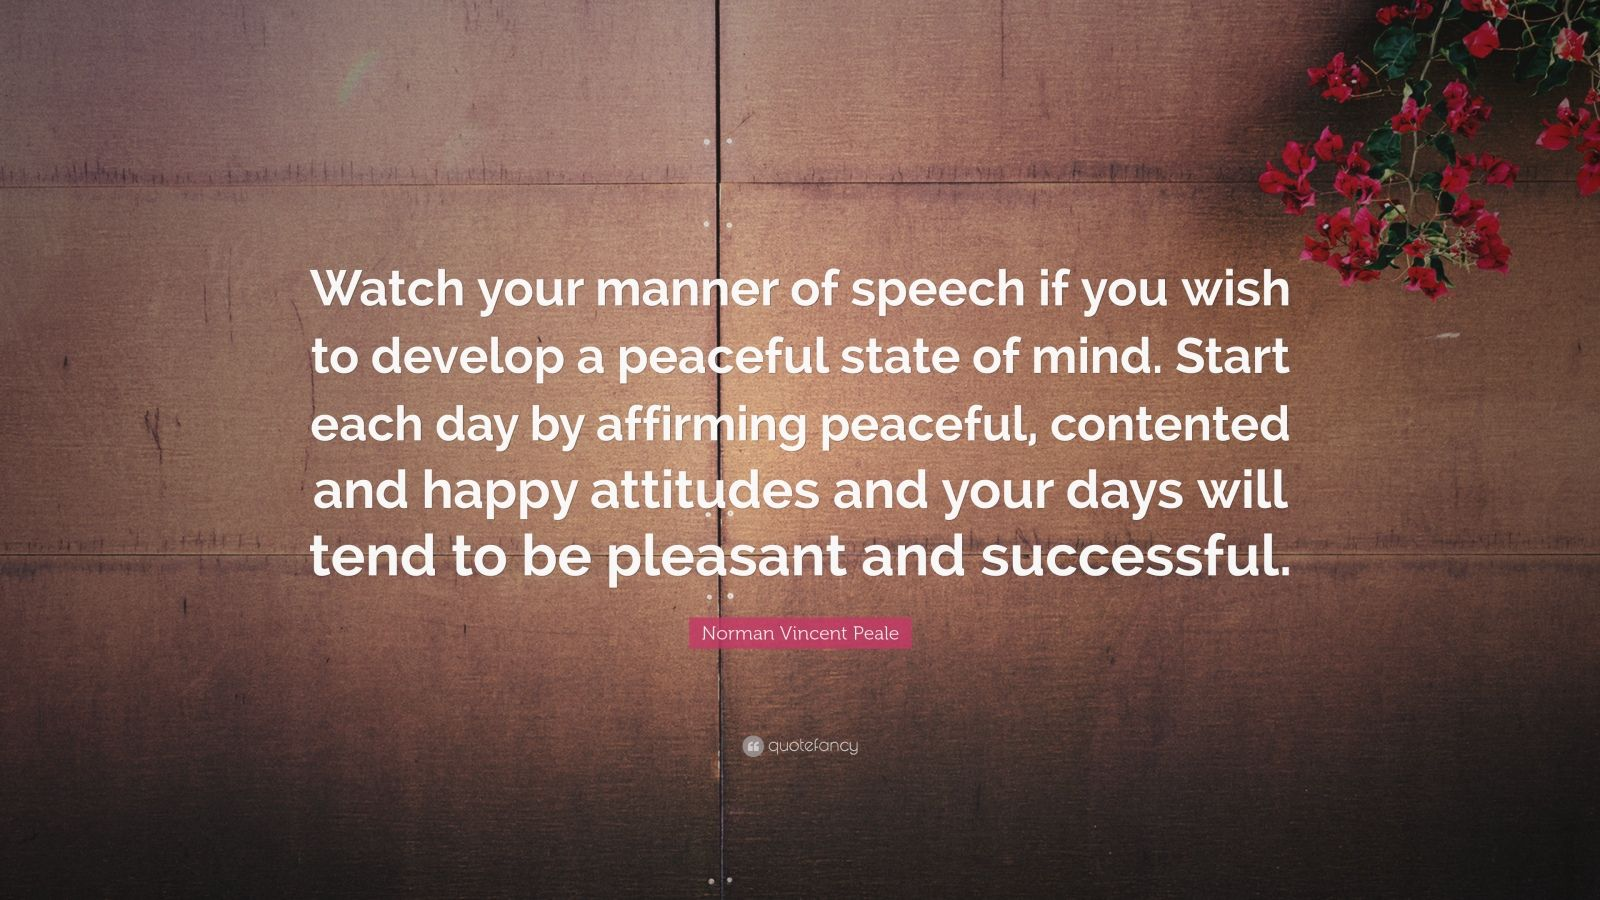 """Norman Vincent Peale Quote: """"Watch your manner of speech if you wish to develop a peaceful state of mind. Start each day by affirming peaceful, contented and happy attitudes and your days will tend to be pleasant and successful."""""""